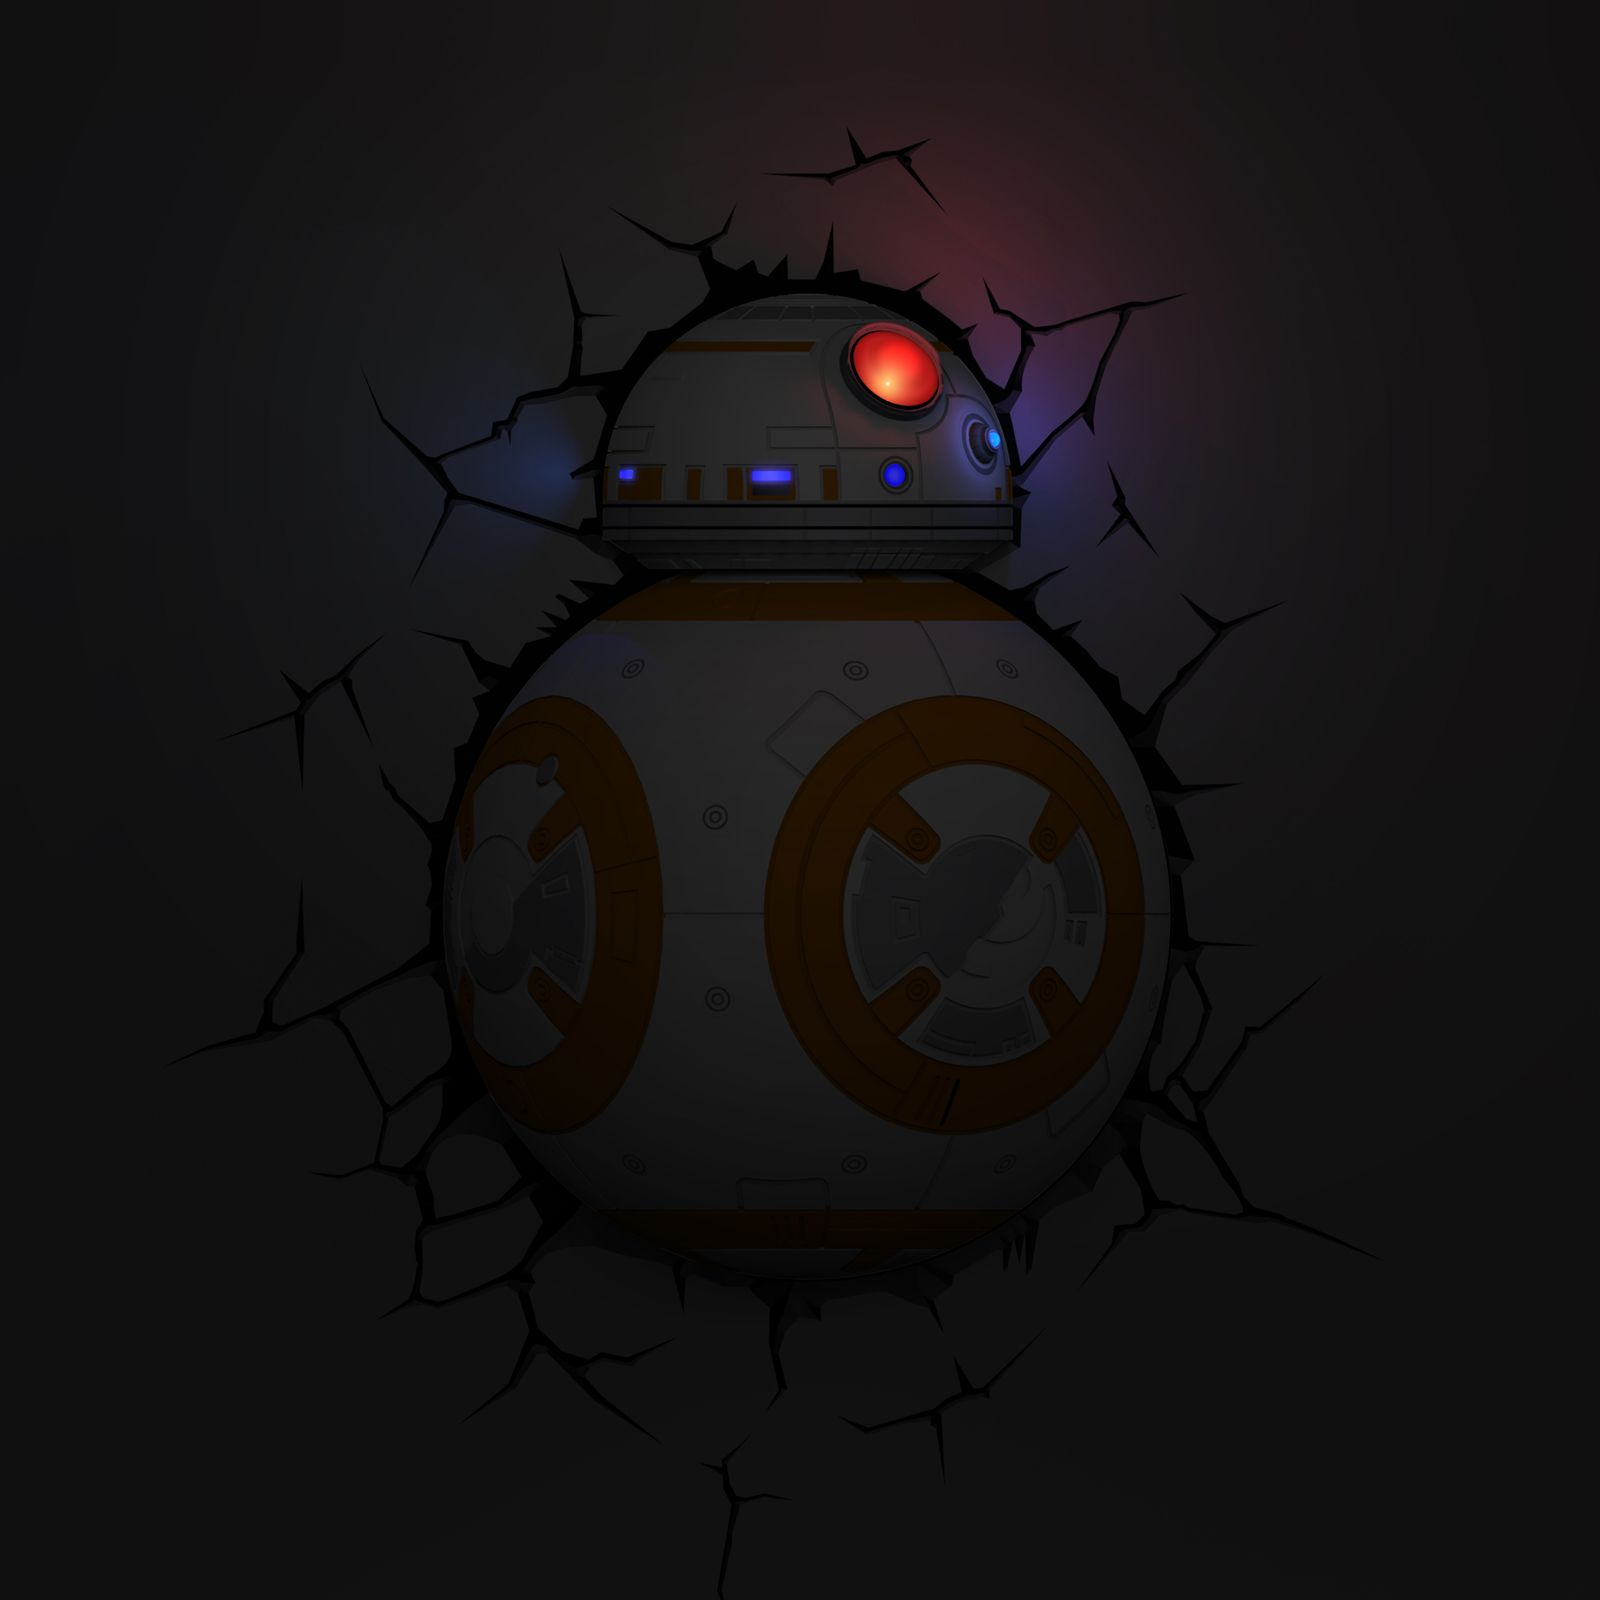 Star Wars Bb 8 3d Led Decor Wall Light Night Lamp With